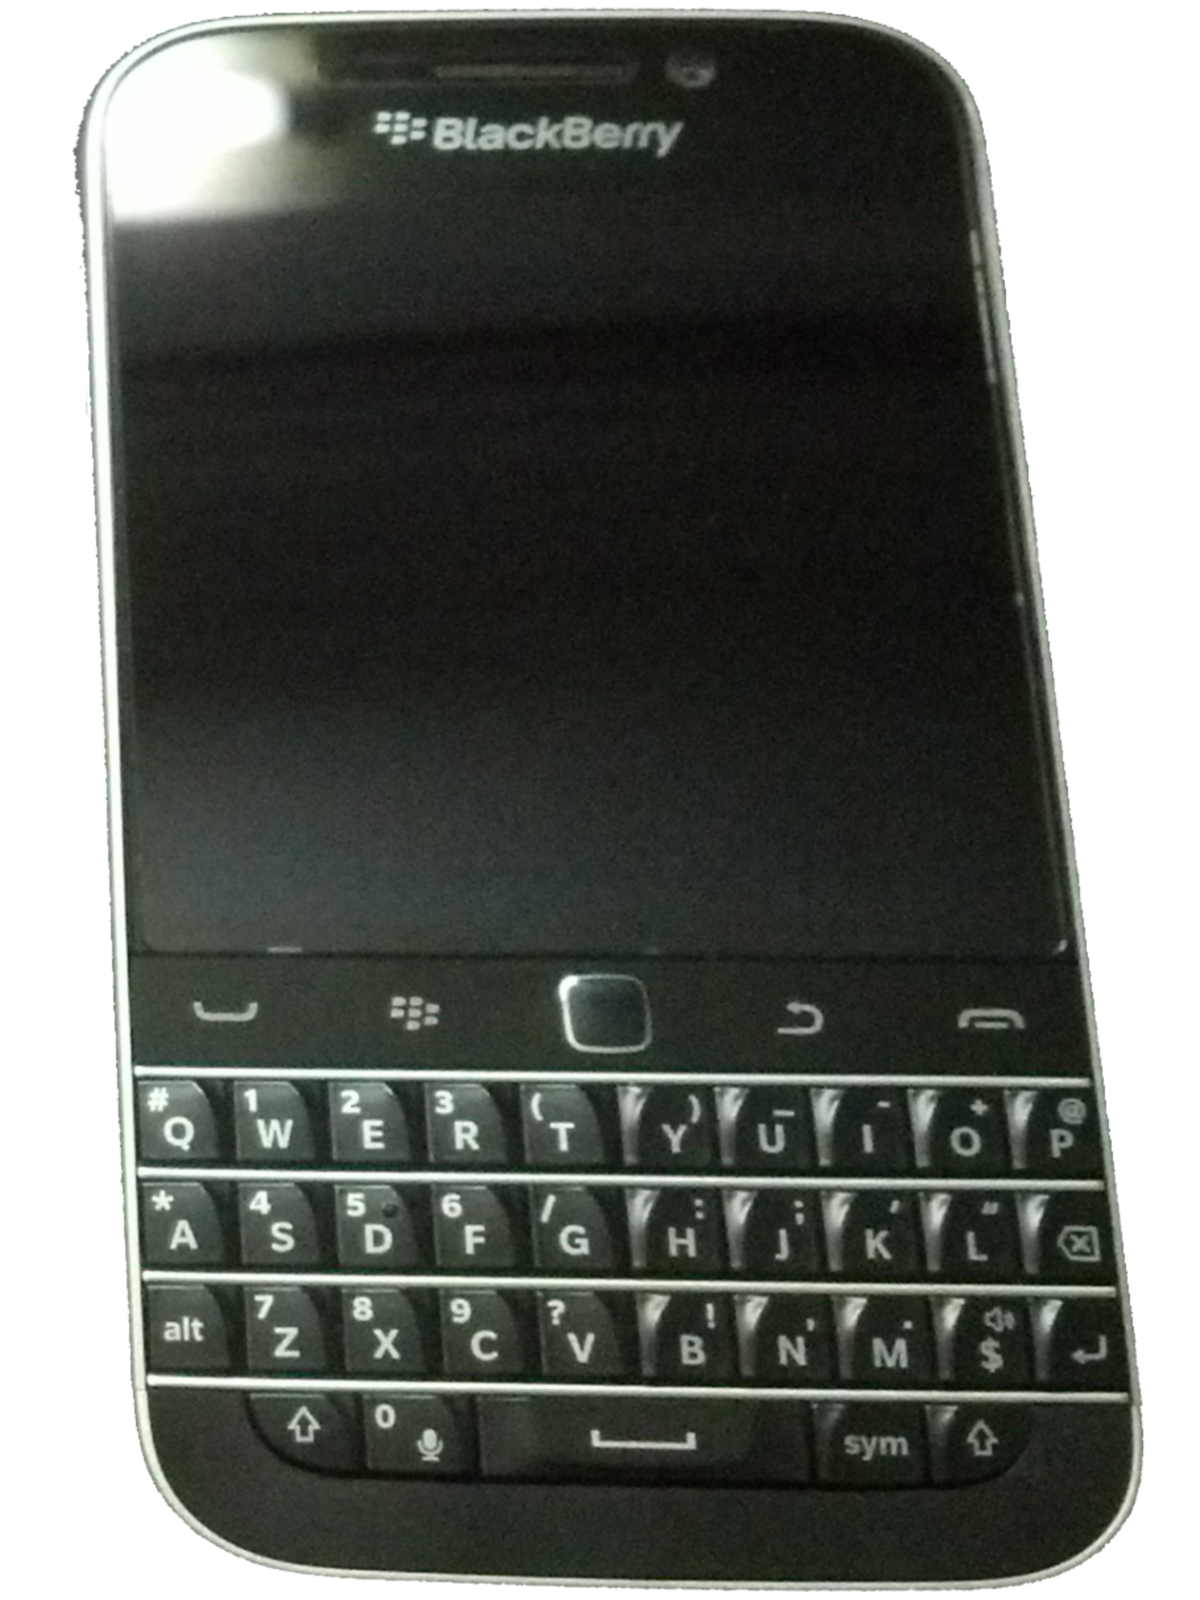 BlackBerry Classic - Wikipedia